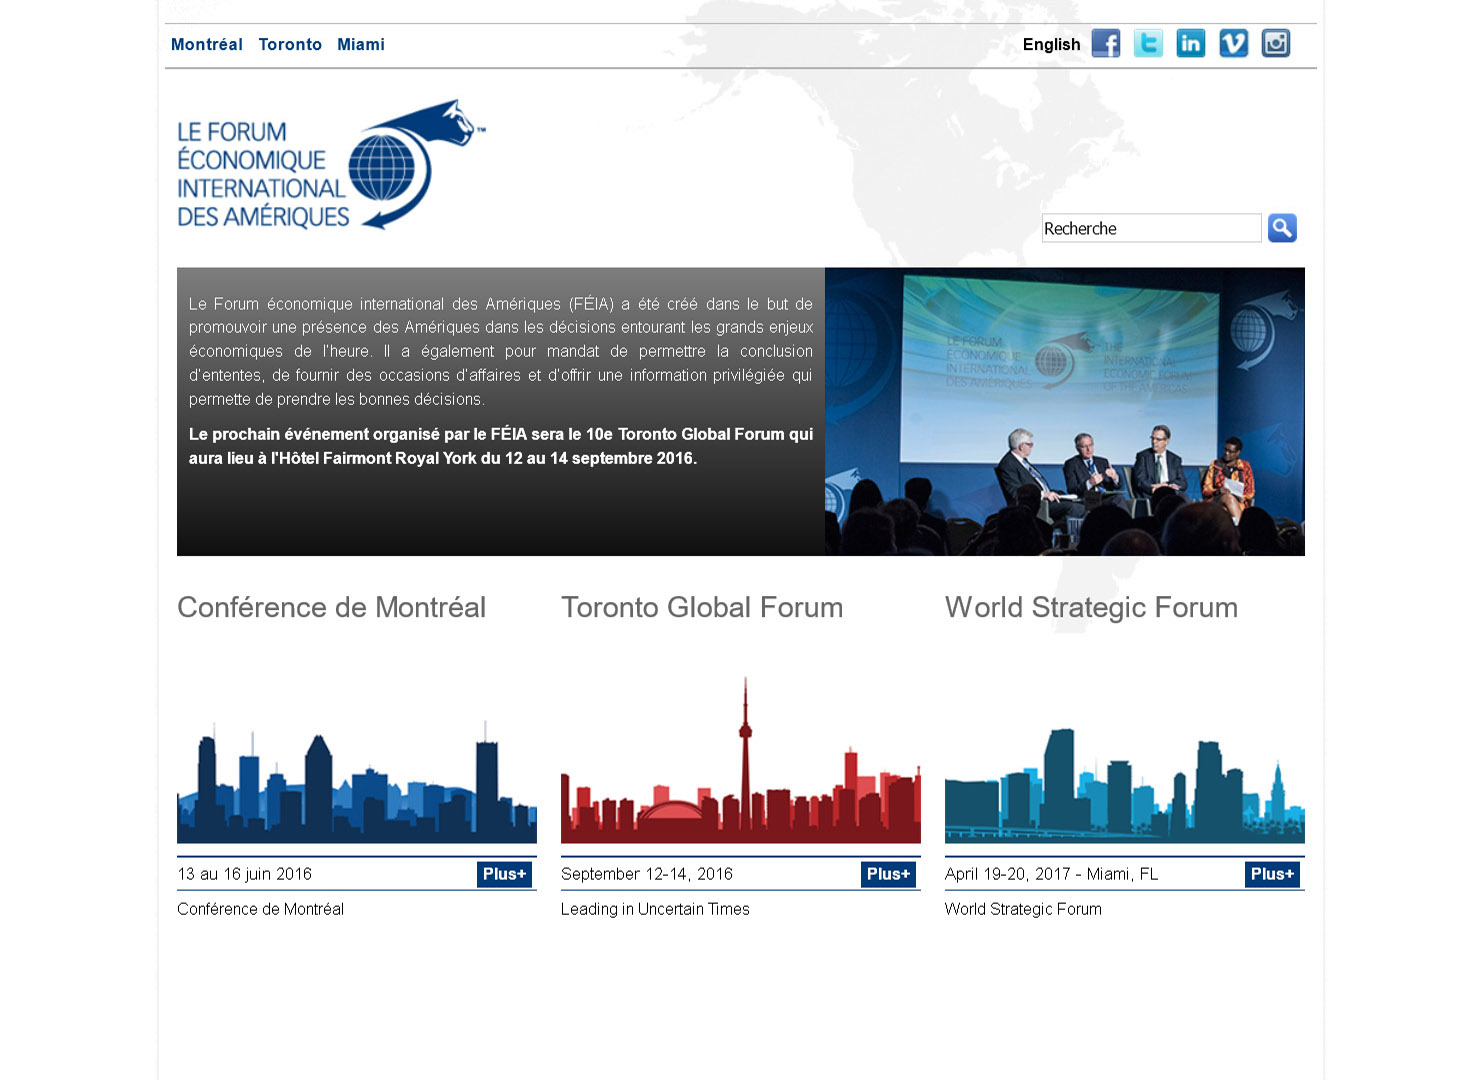 International Economic Forum of the Americas (splash page)